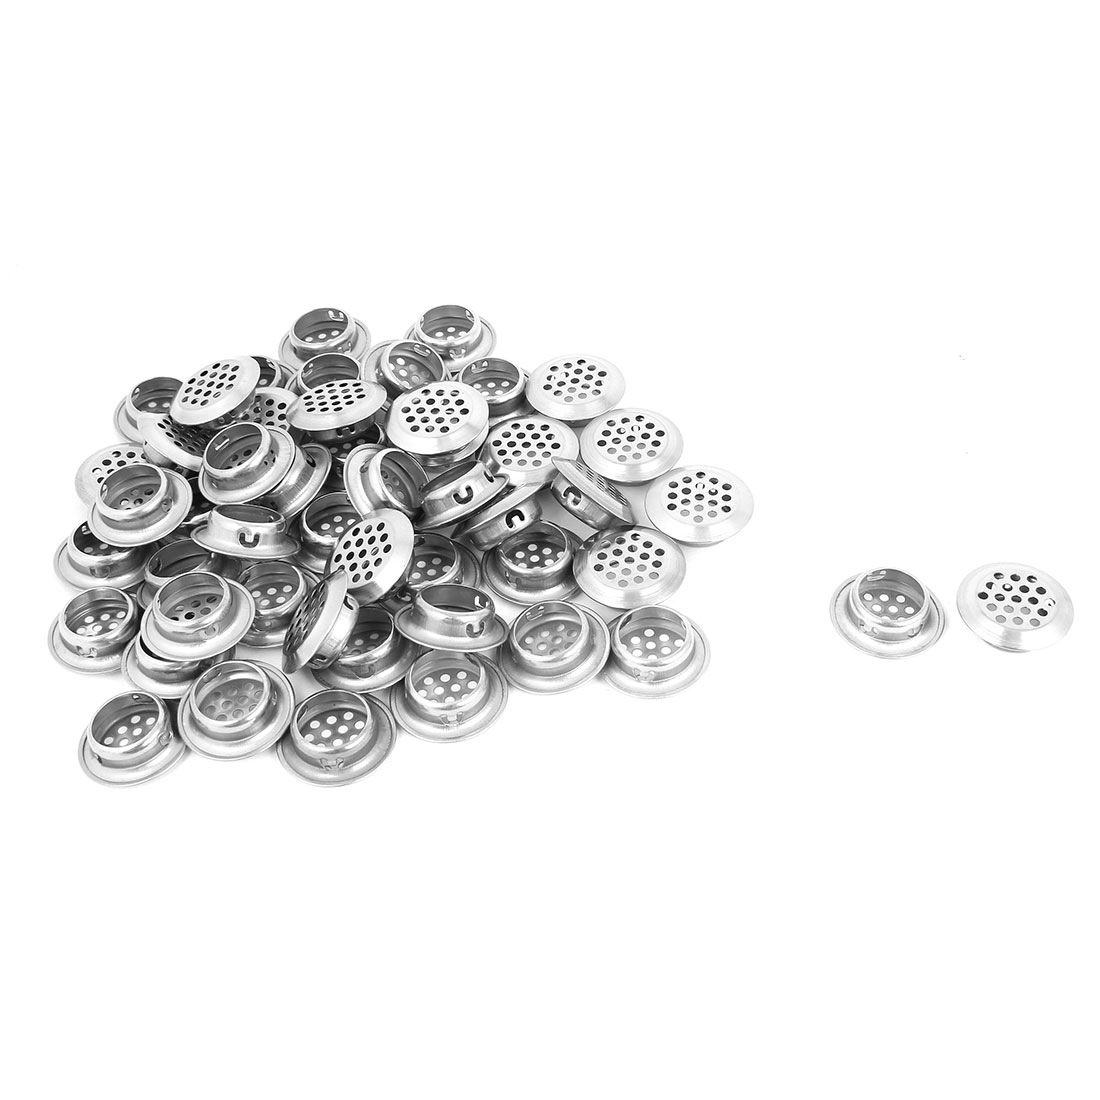 50 Pcs Stainless Steel 25mm Bottom Dia Round Perforated Mesh Air Vents Louvers